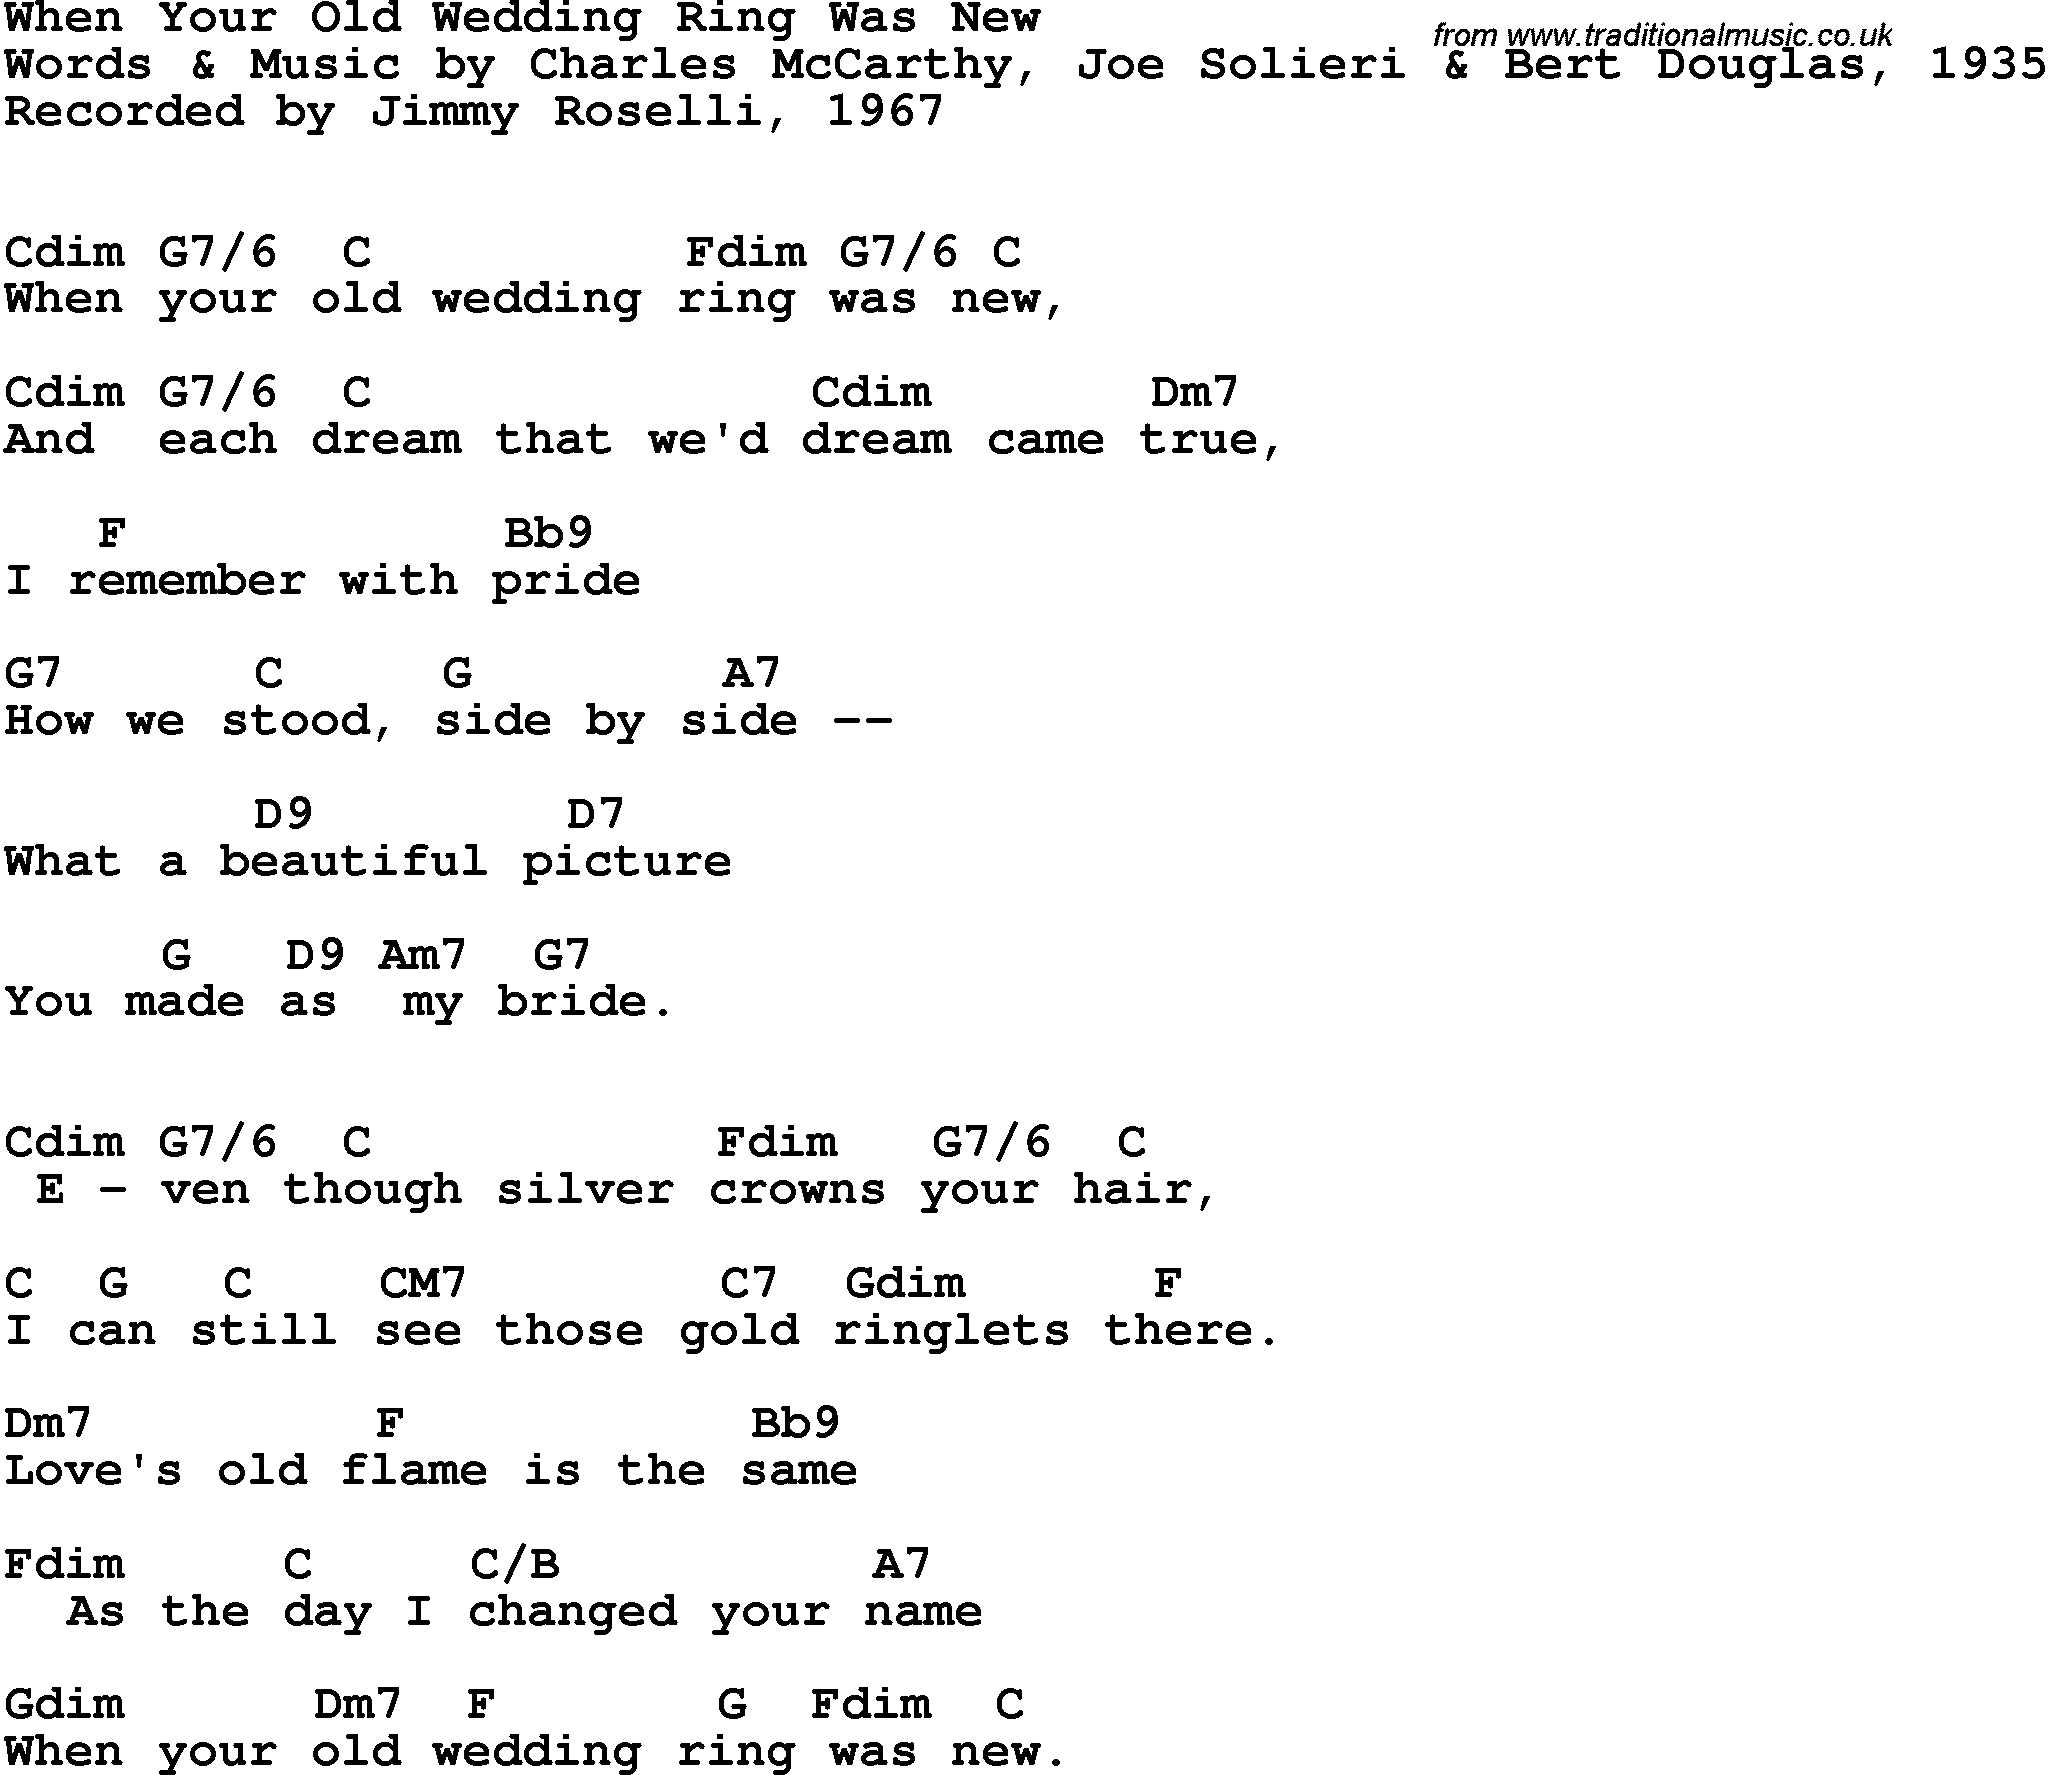 Song lyrics with guitar chords for When Your Old Wedding Ring Was